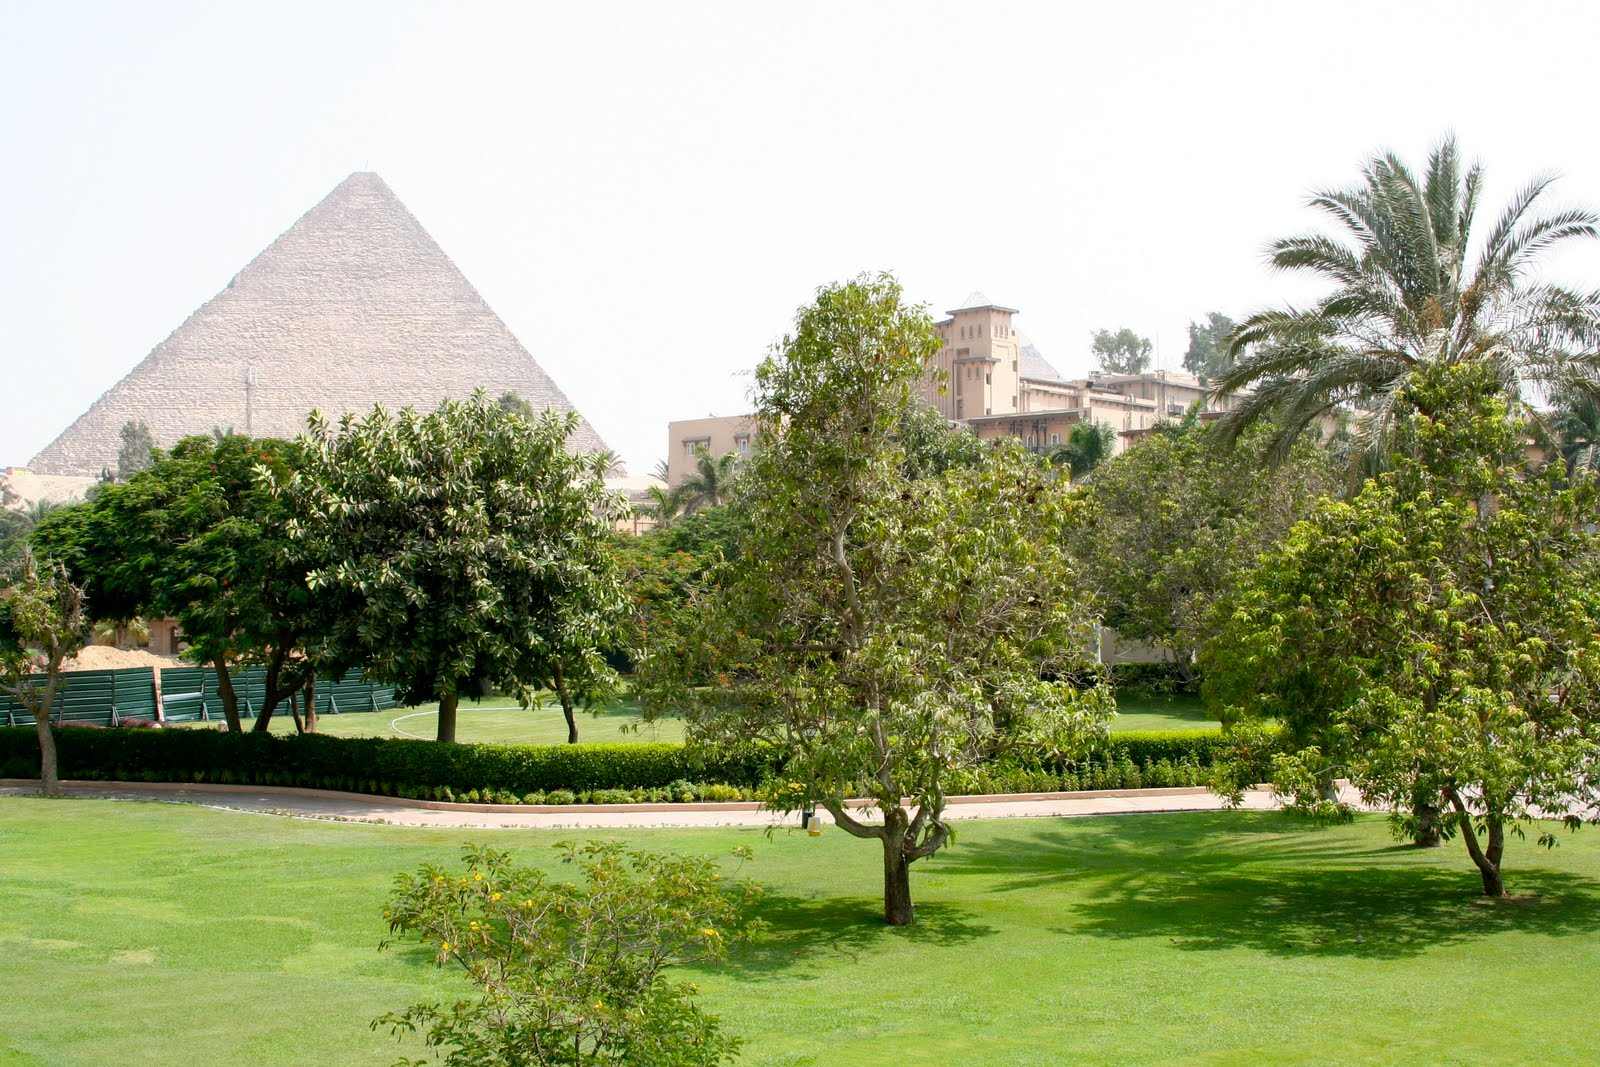 Pyramids from hotel